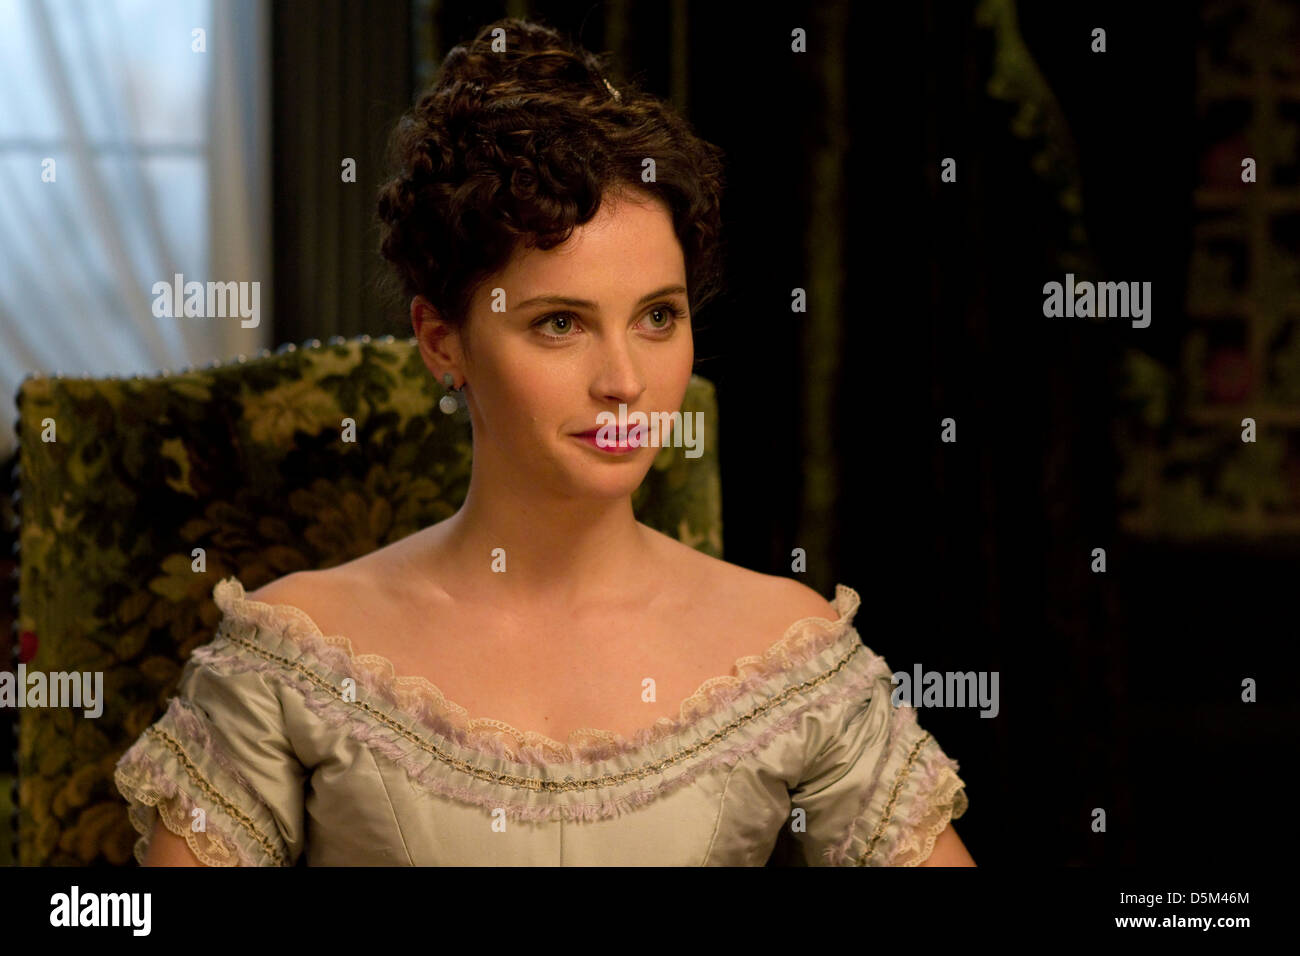 FELICITY JONES HYSTERIA (2011) - Stock Image